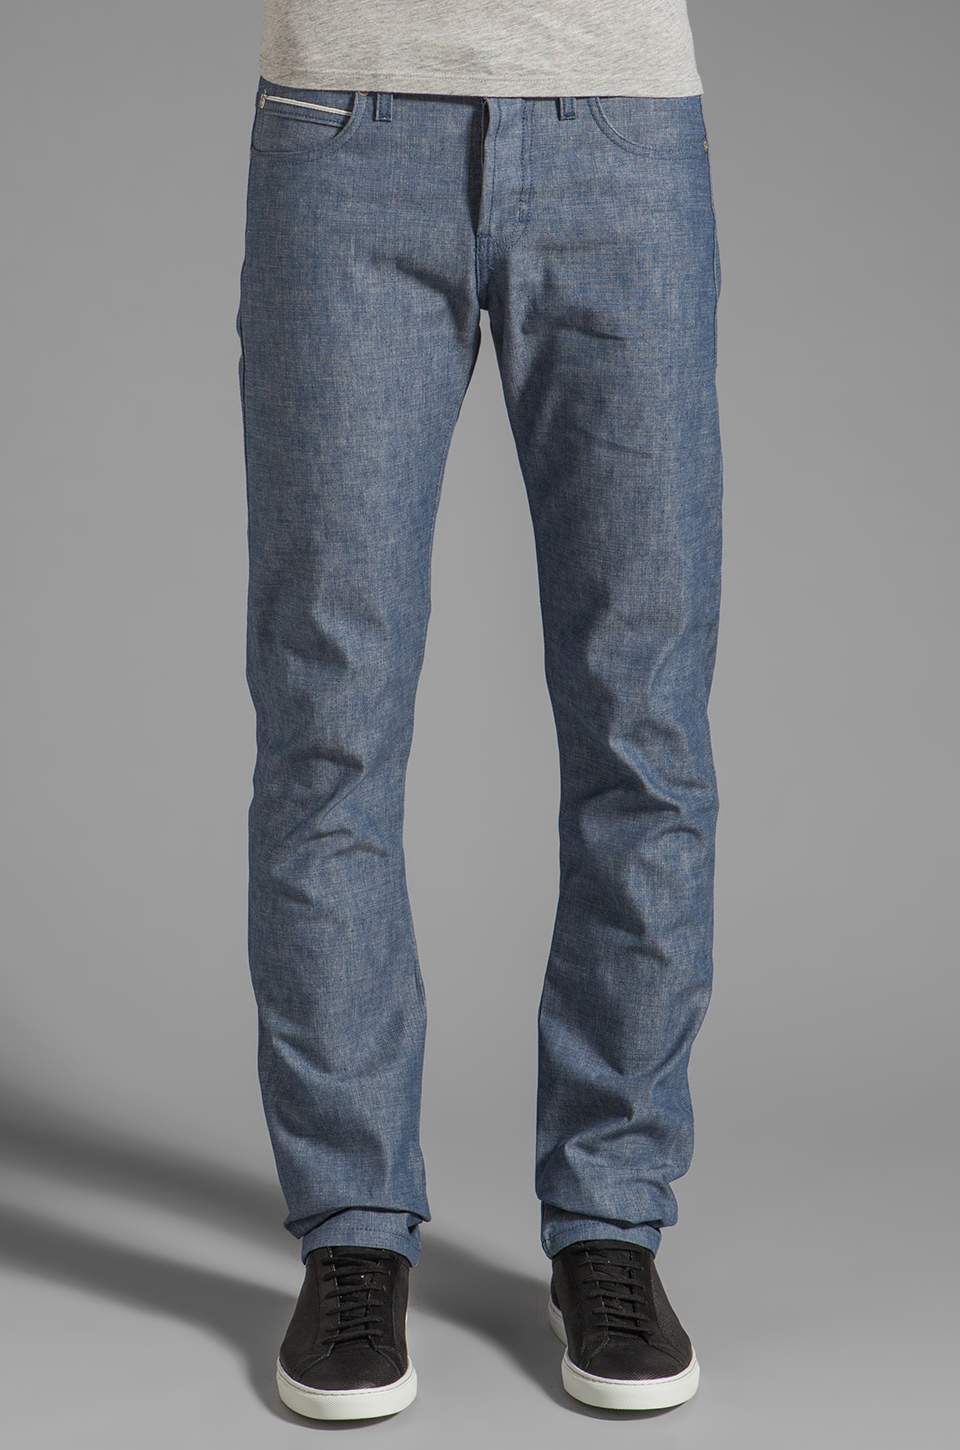 Naked & Famous Denim Skinny Guy 8 oz Selvedge Chambray